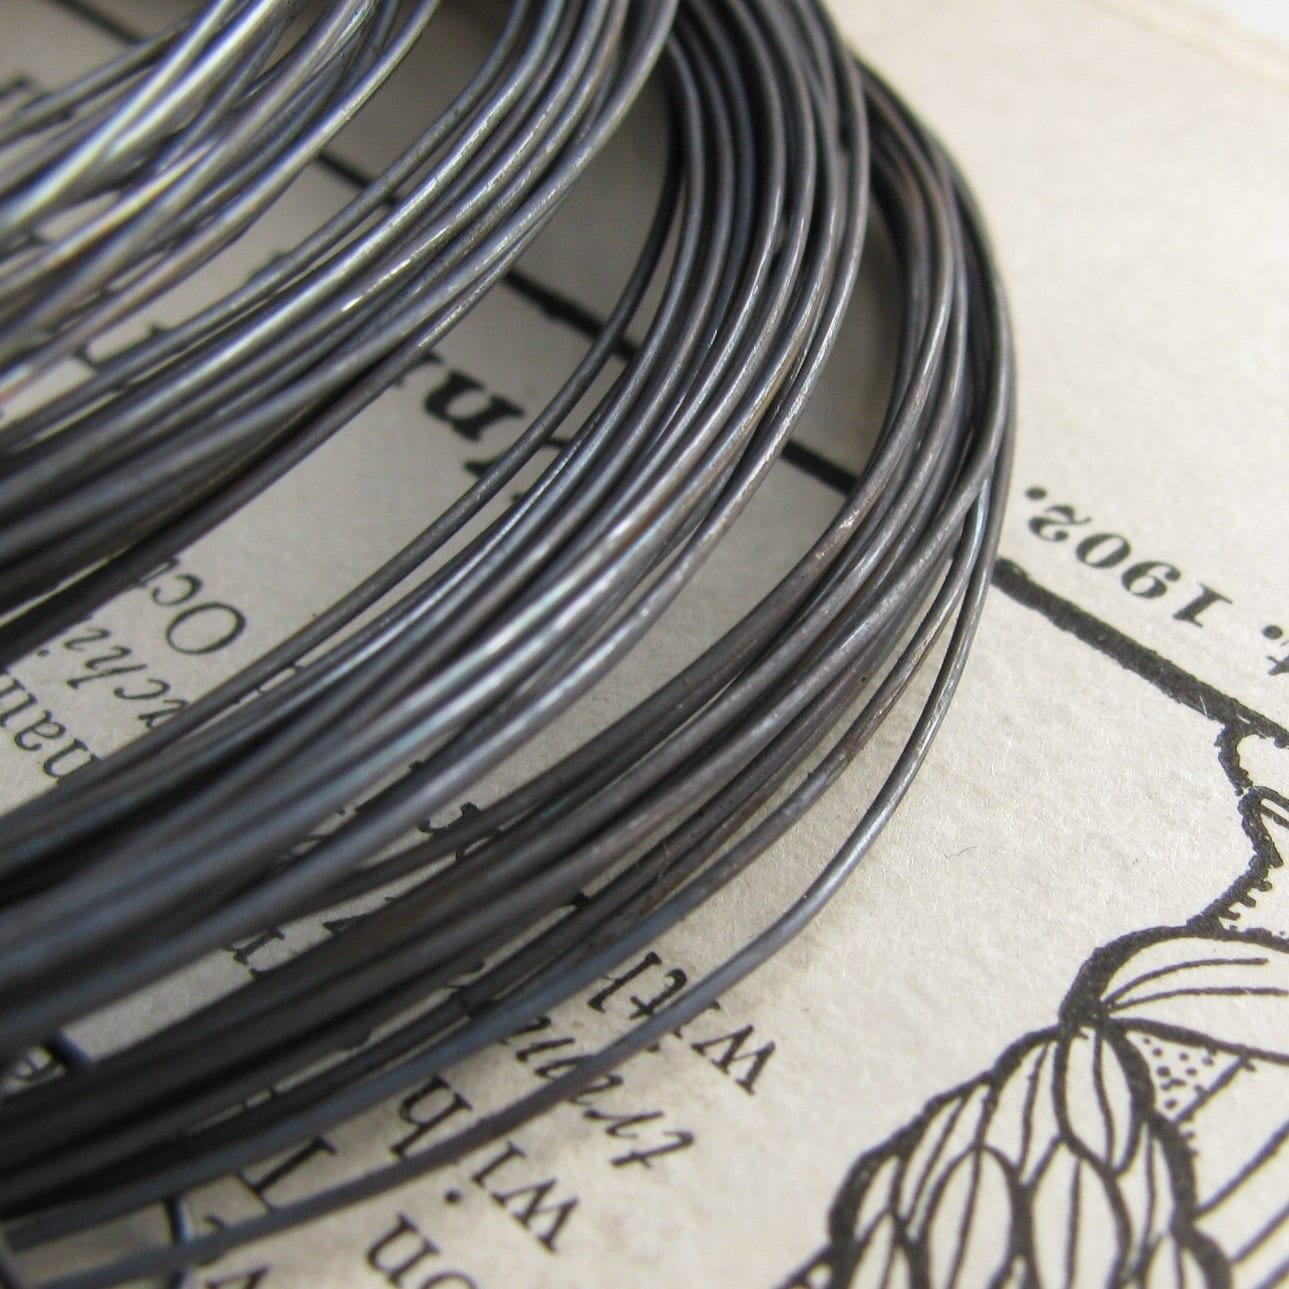 24 gauge wire aged rustic black patina hand antiqued wire